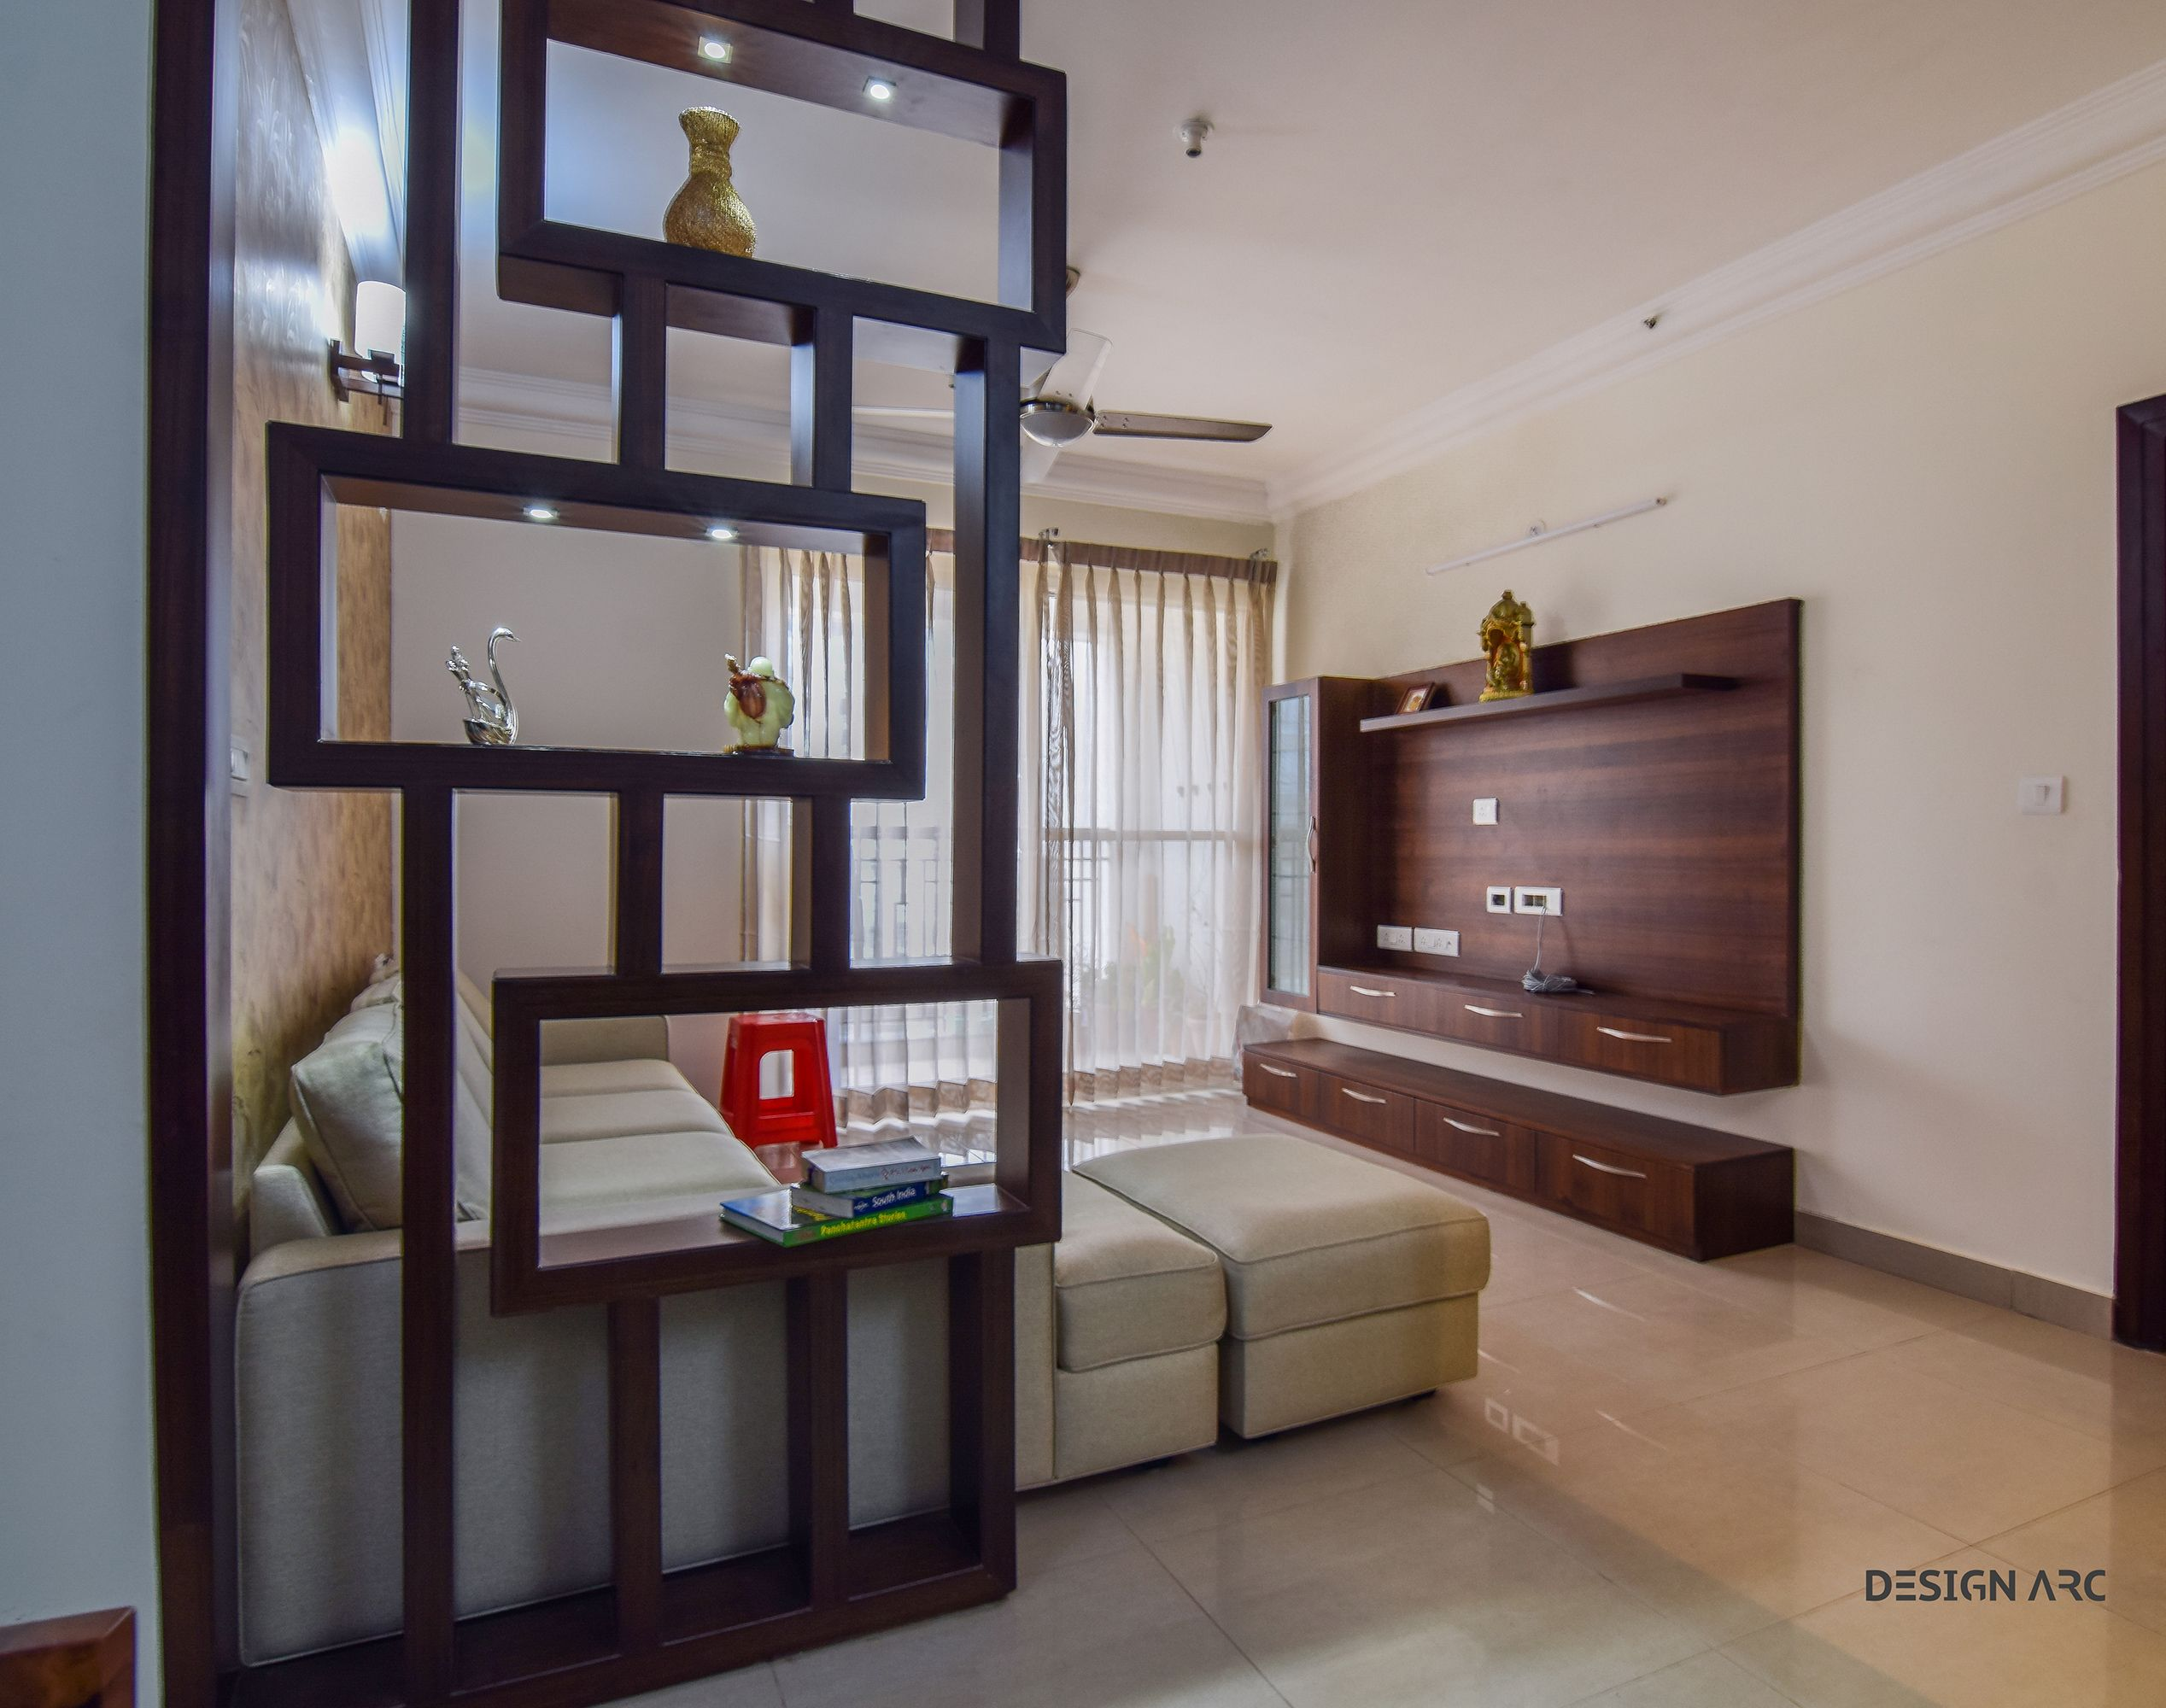 Interior design bangalore tv unit design concept living for Design apartment room